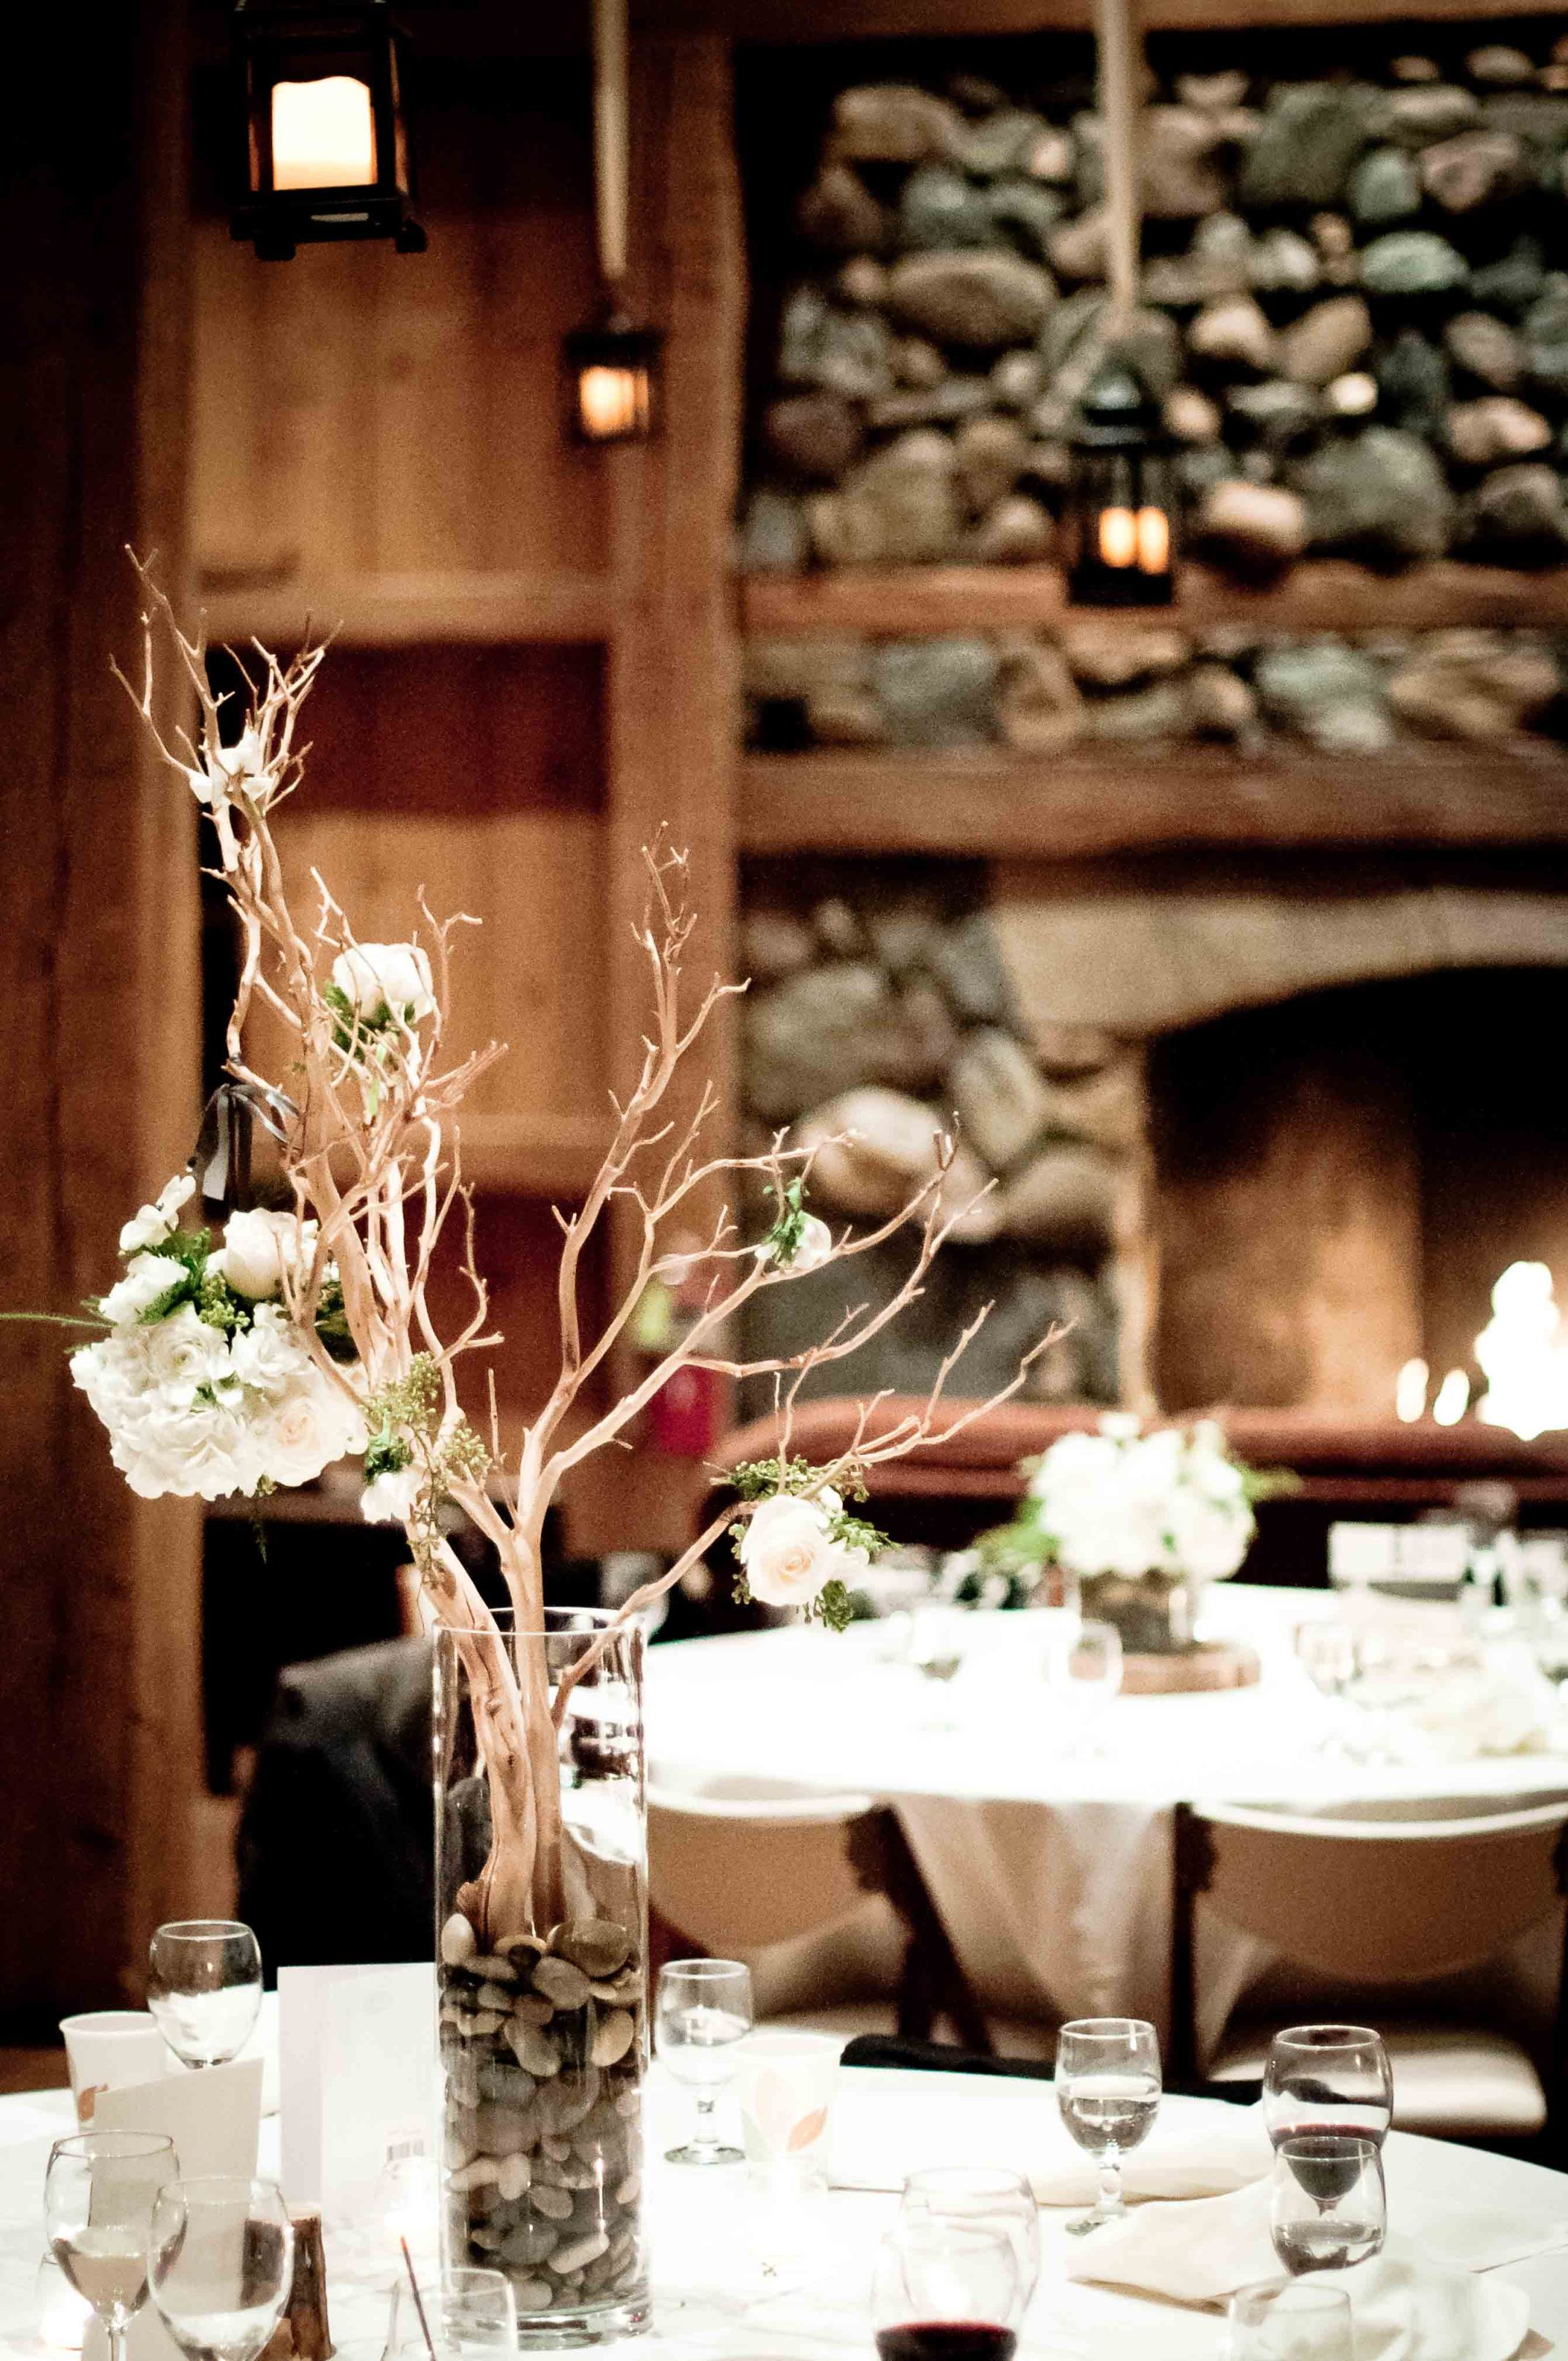 Rustic centerpiece perfect for winter wedding or mountain retreat